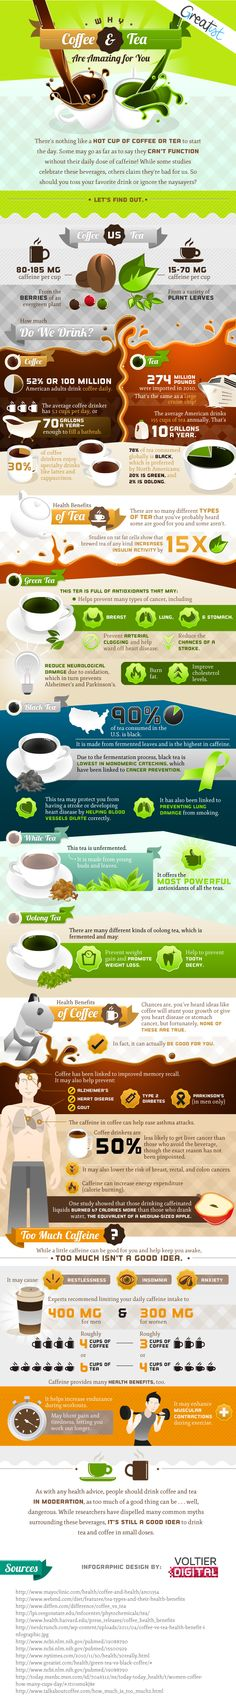 health benefits of coffee and tea